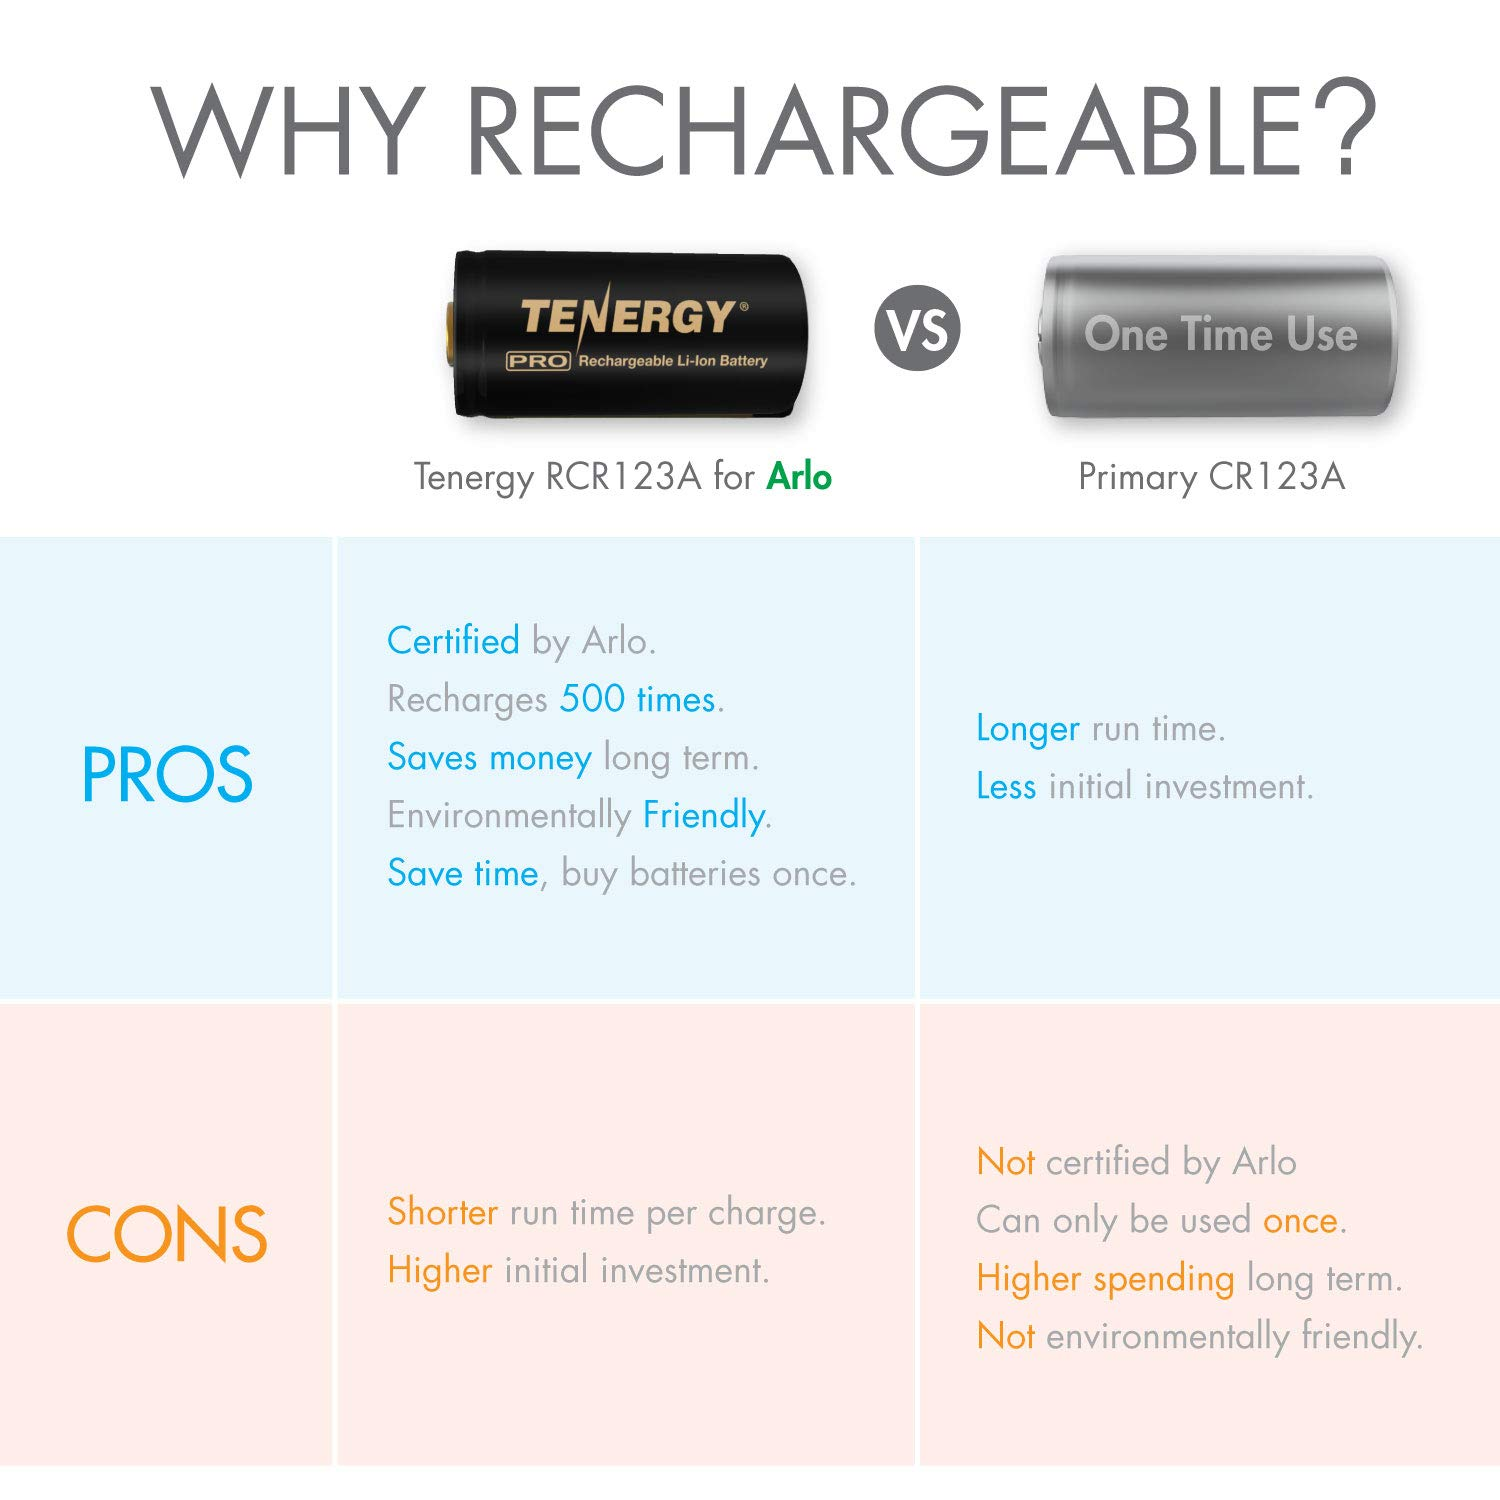 Arlo Certified: Tenergy PremiumHigh Capacity 750mAh 3.7V Arlo BatteryandSmart Fast ChargerforLi-ion RCR123A Rechargeable Batteryfor Arlo Cameras (VMC3030/VMK3200/VMS3330/3430/3530), 4-Pack by Tenergy (Image #4)